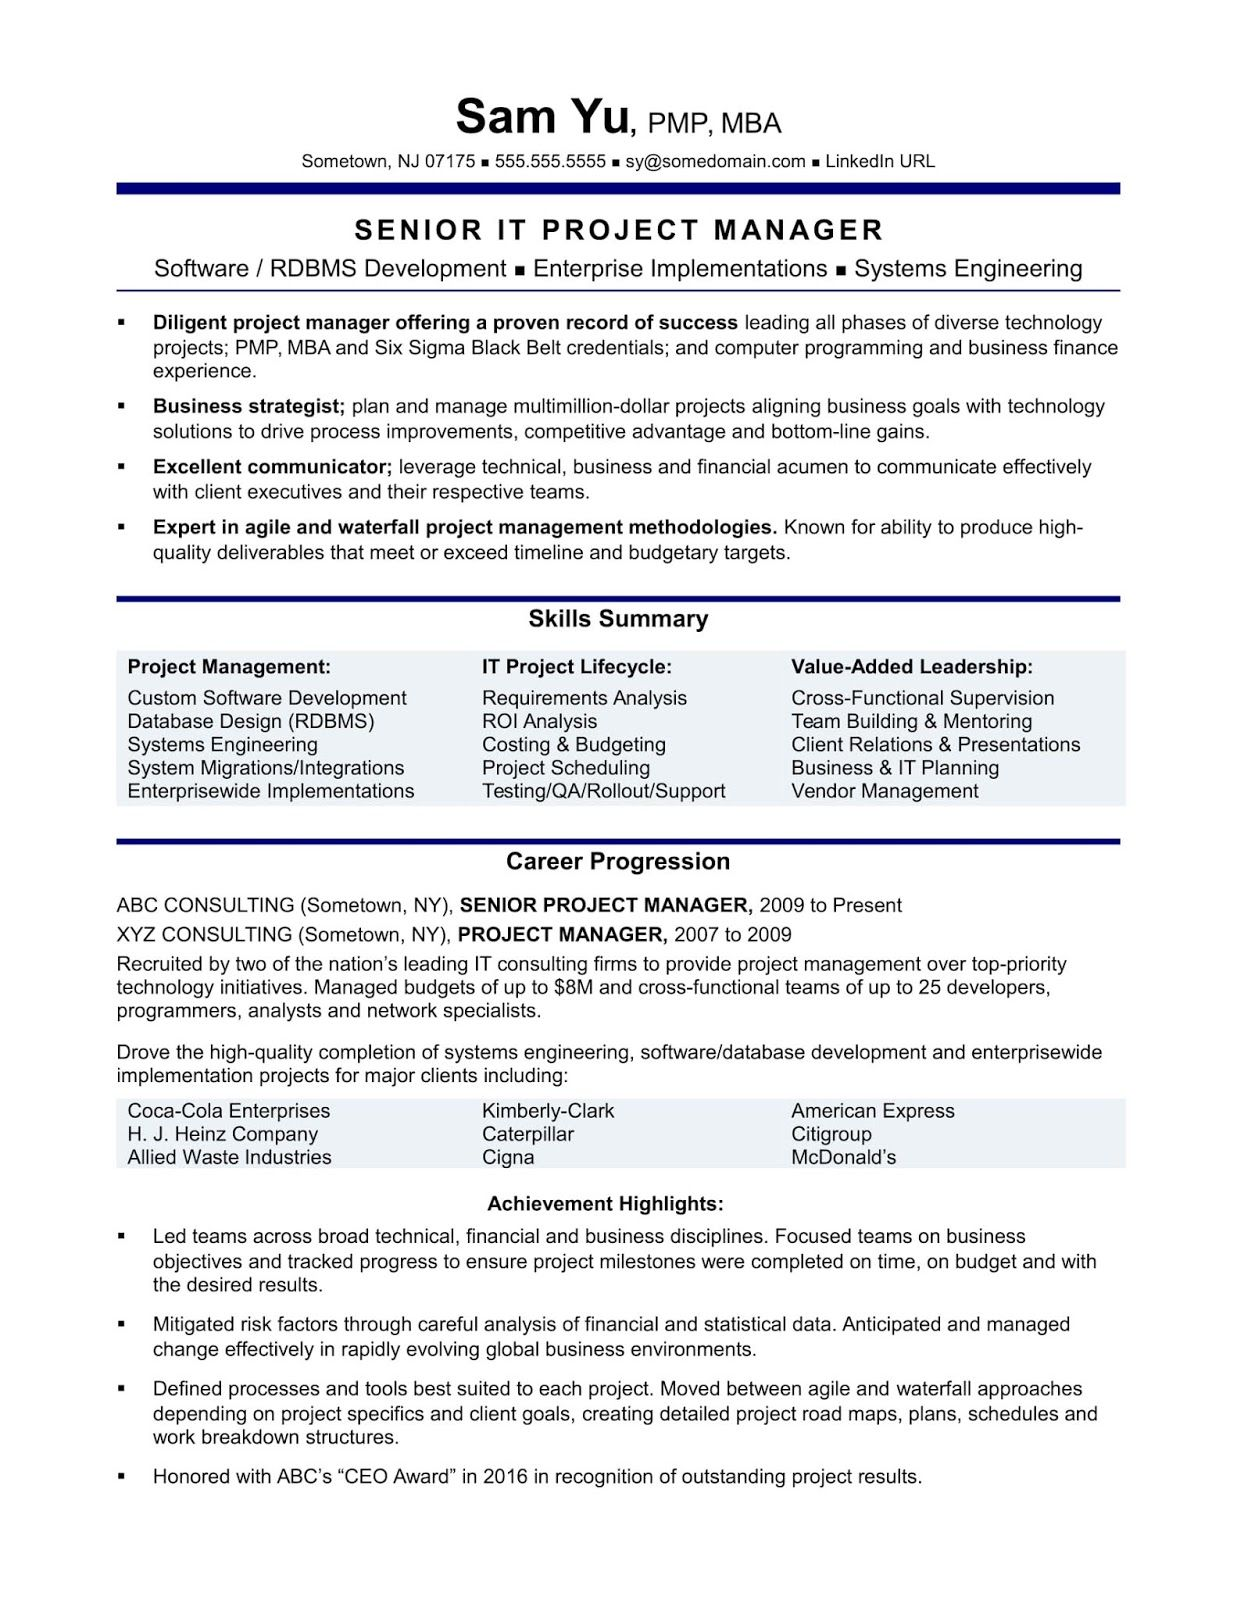 Marketing Manager Cv Example Marketing Manager Cv Example 2018 Marketing Manager Cv Examples Uk Ma Project Manager Resume Project Management Resume Examples